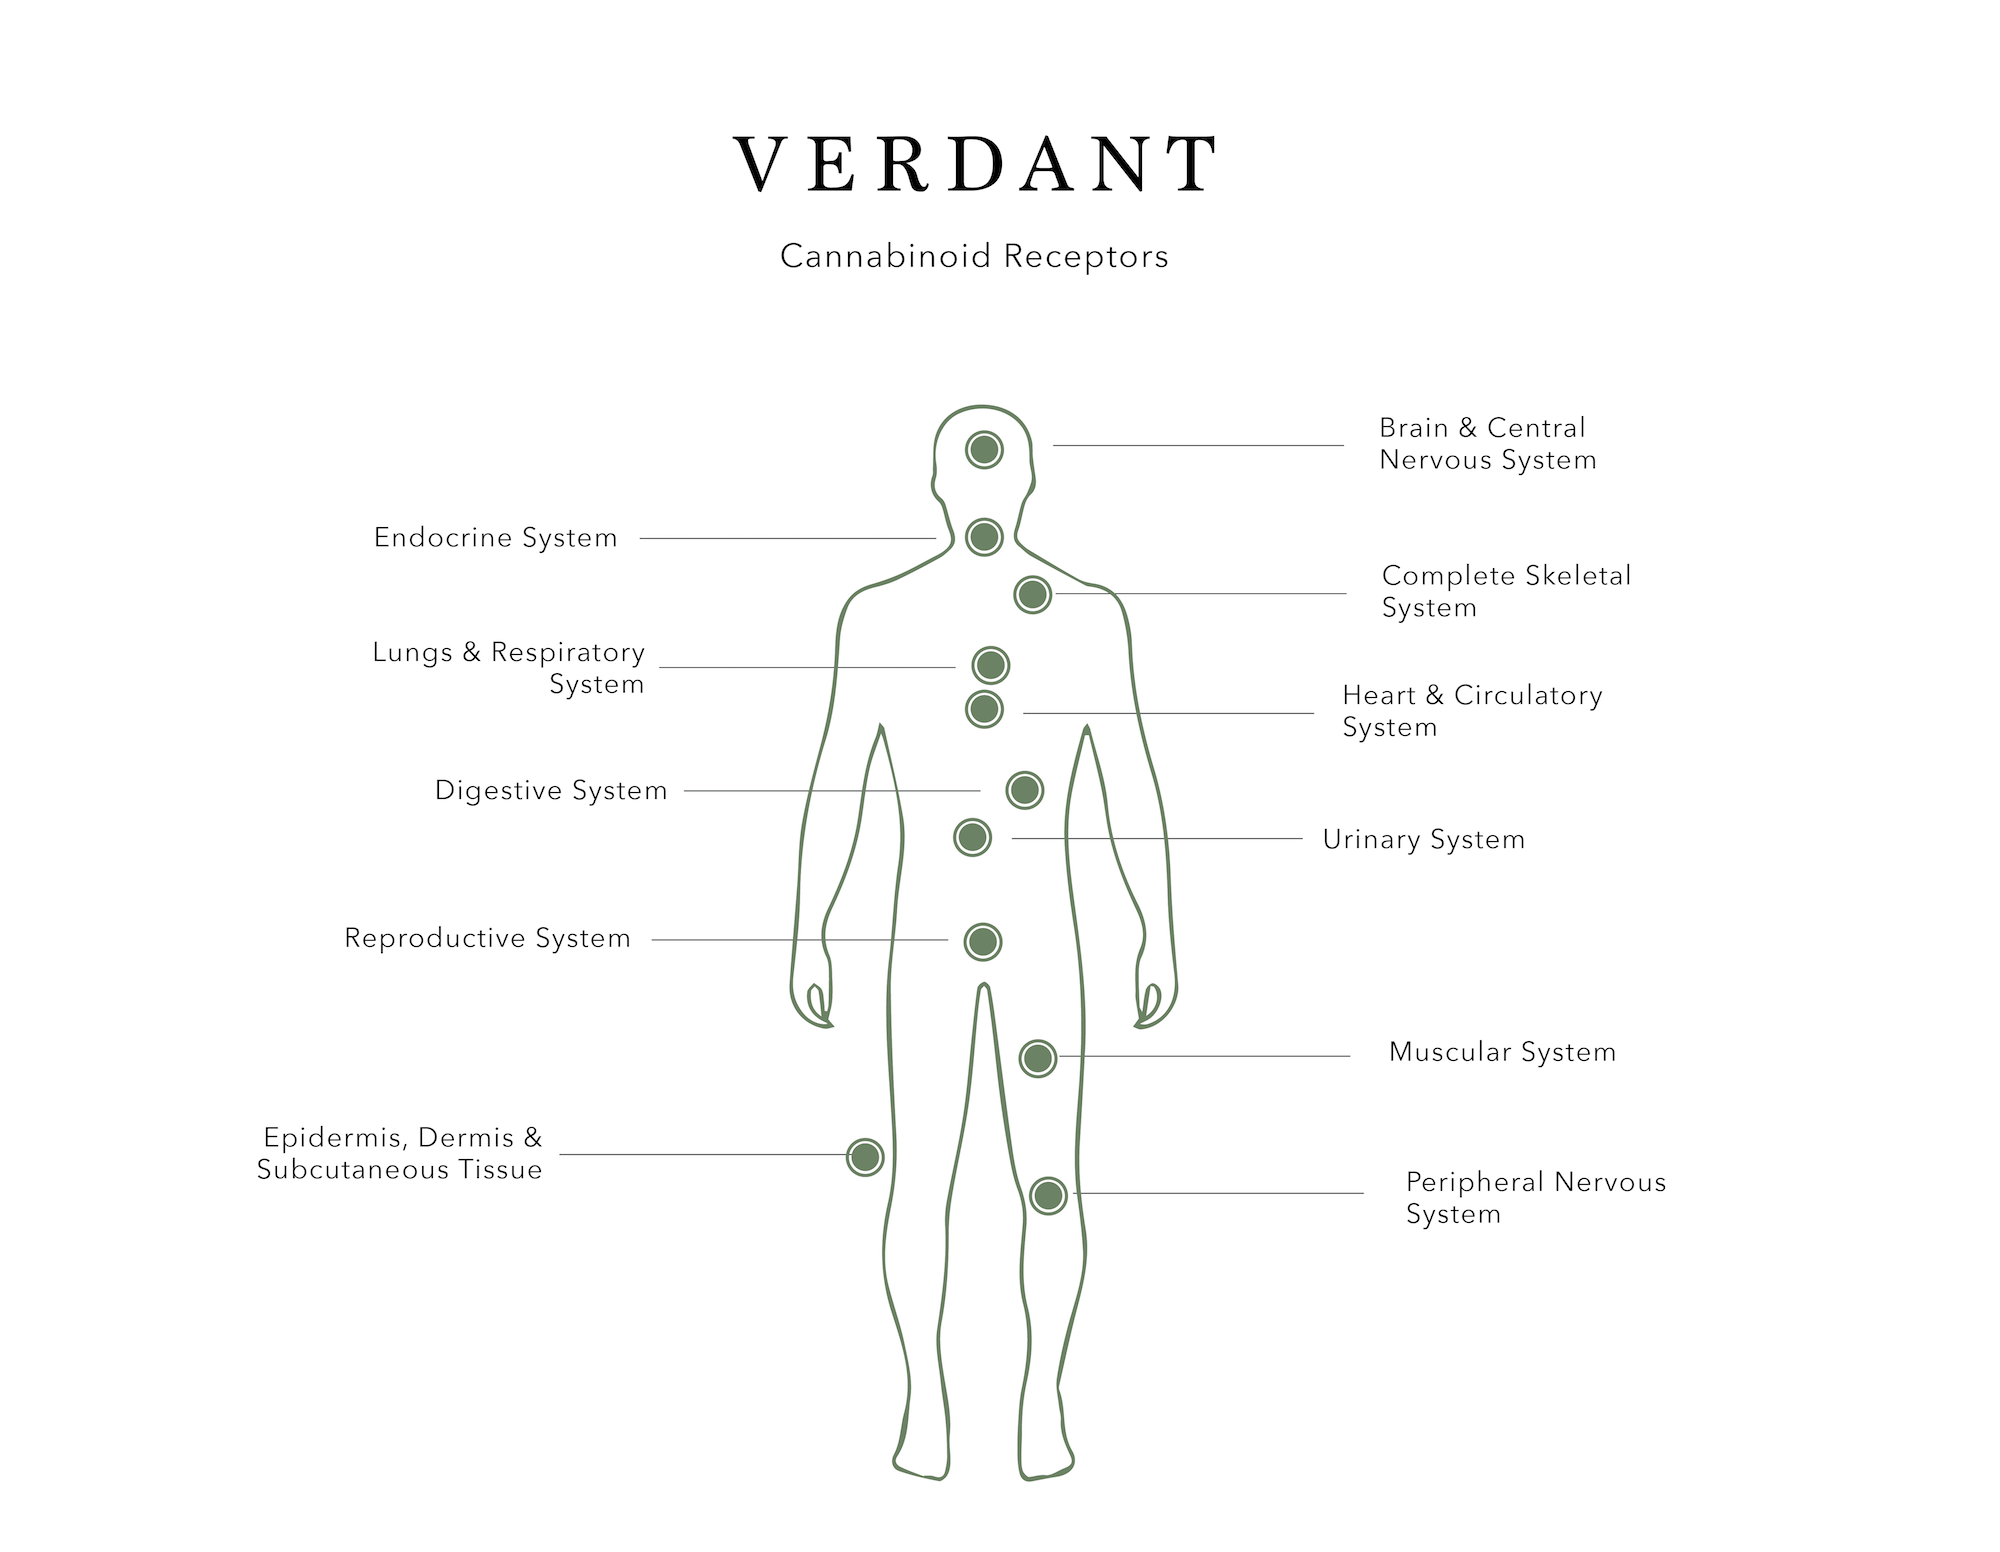 Verdant Full Spectrum THC Free Hemp Extract – Cannabinoid Receptors and the Endocannabinoid System